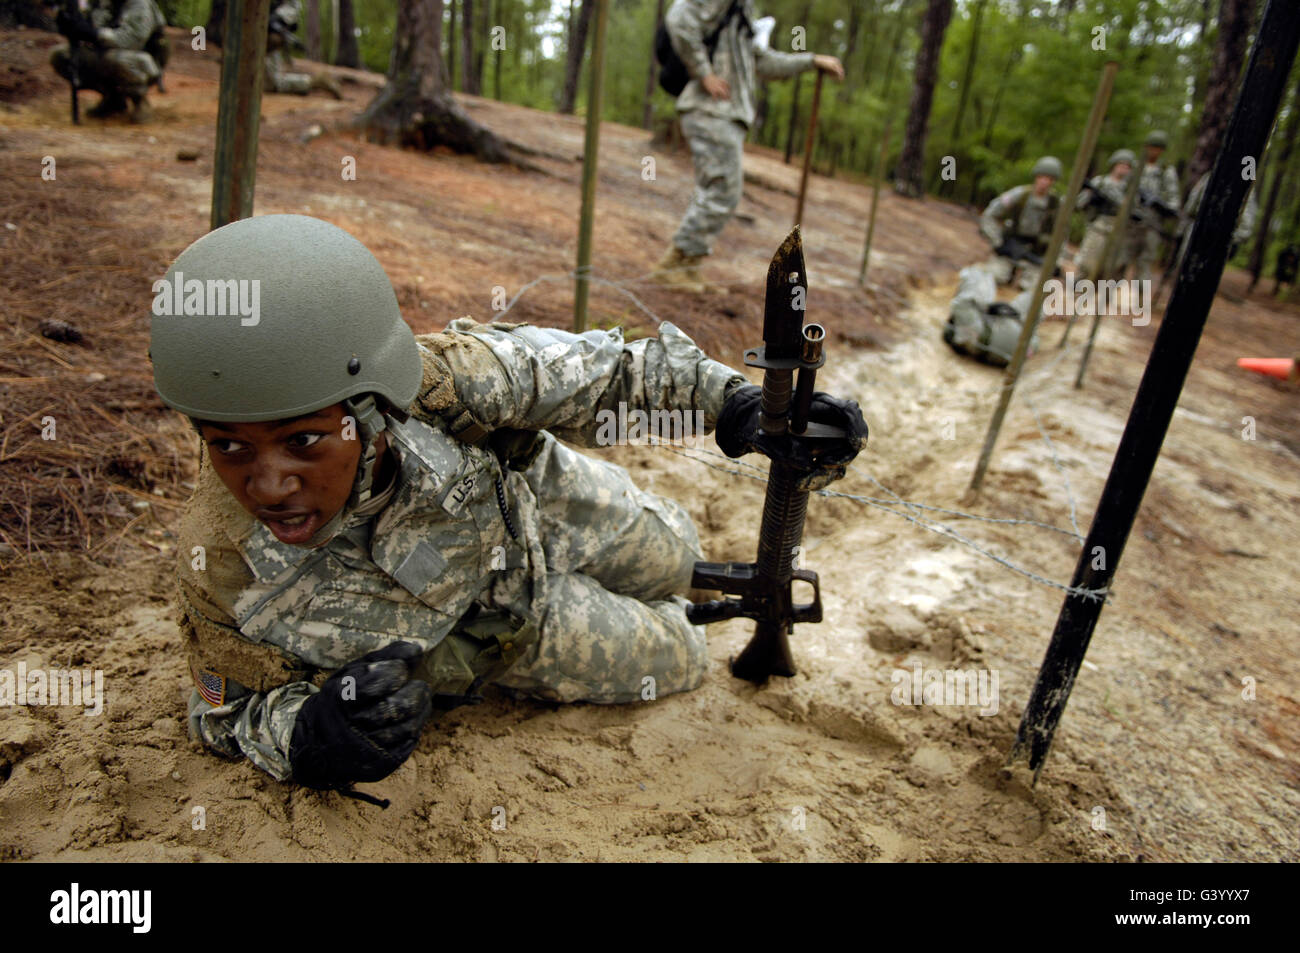 A U.S. Army recruit negotiating the confidence course during basic combat training at Fort Jackson, South Carolina. - Stock Image